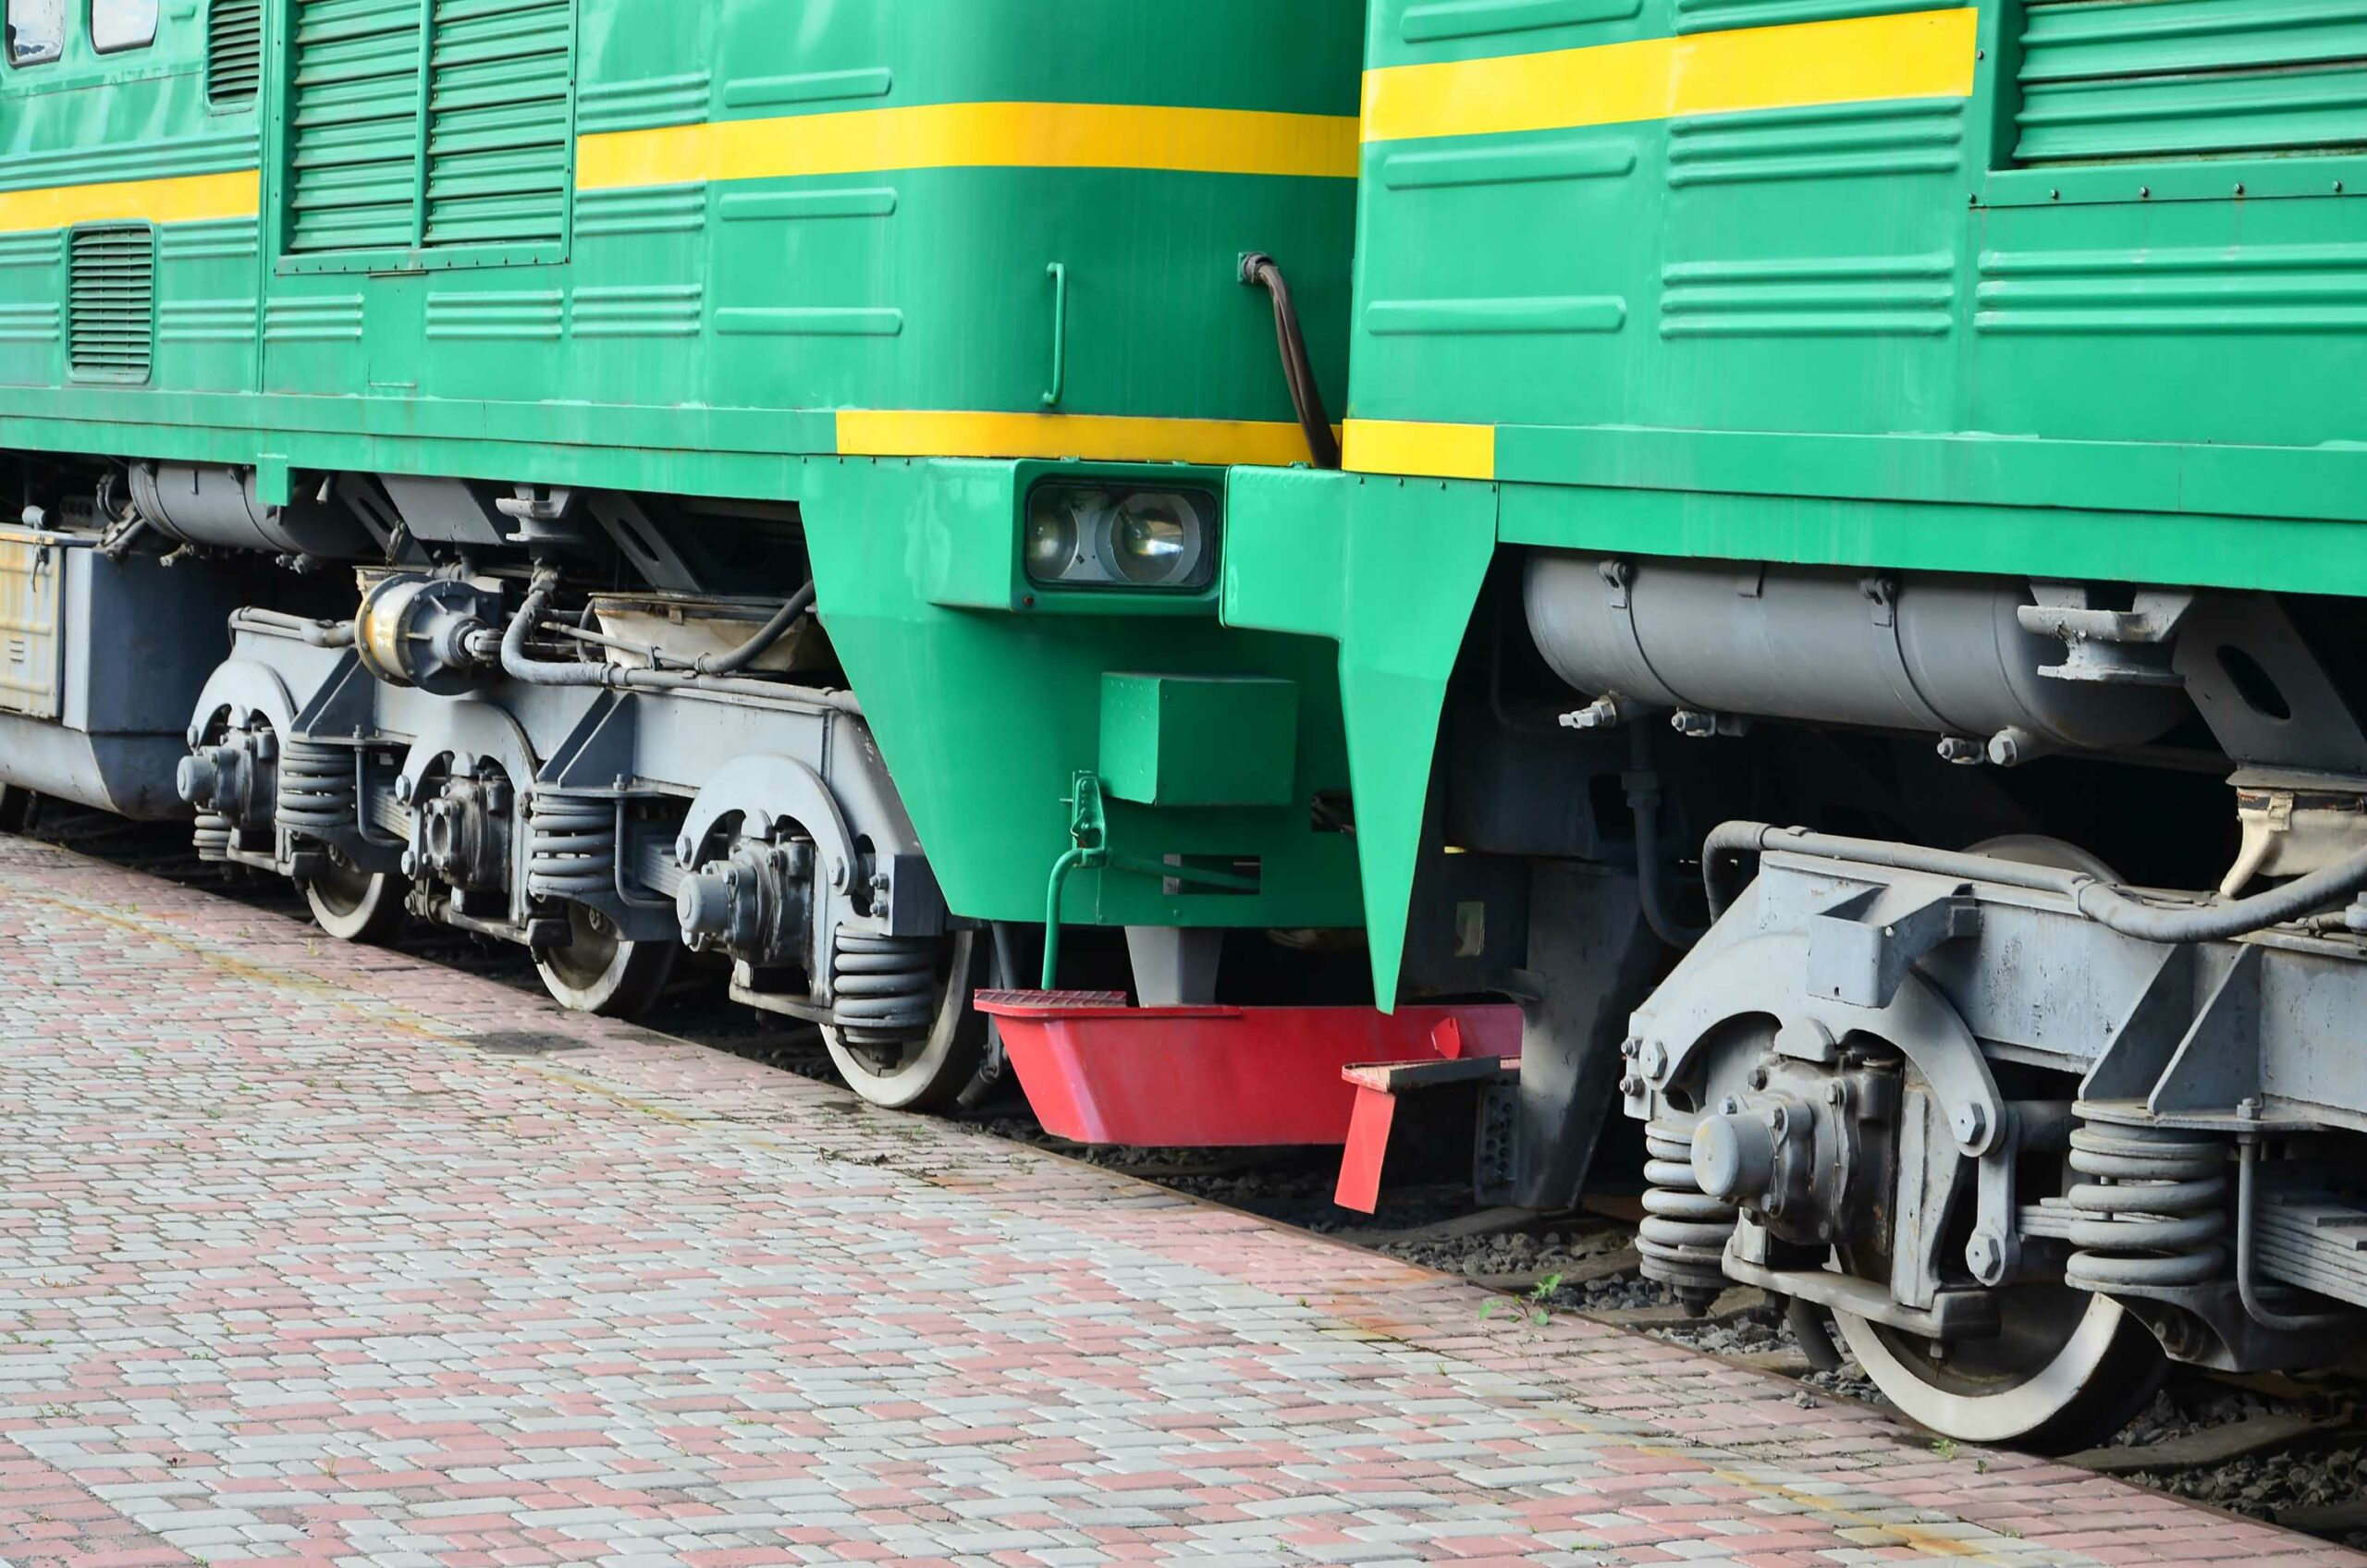 New multimodal rail service launced between Kaliningrad and Hamburg. 1